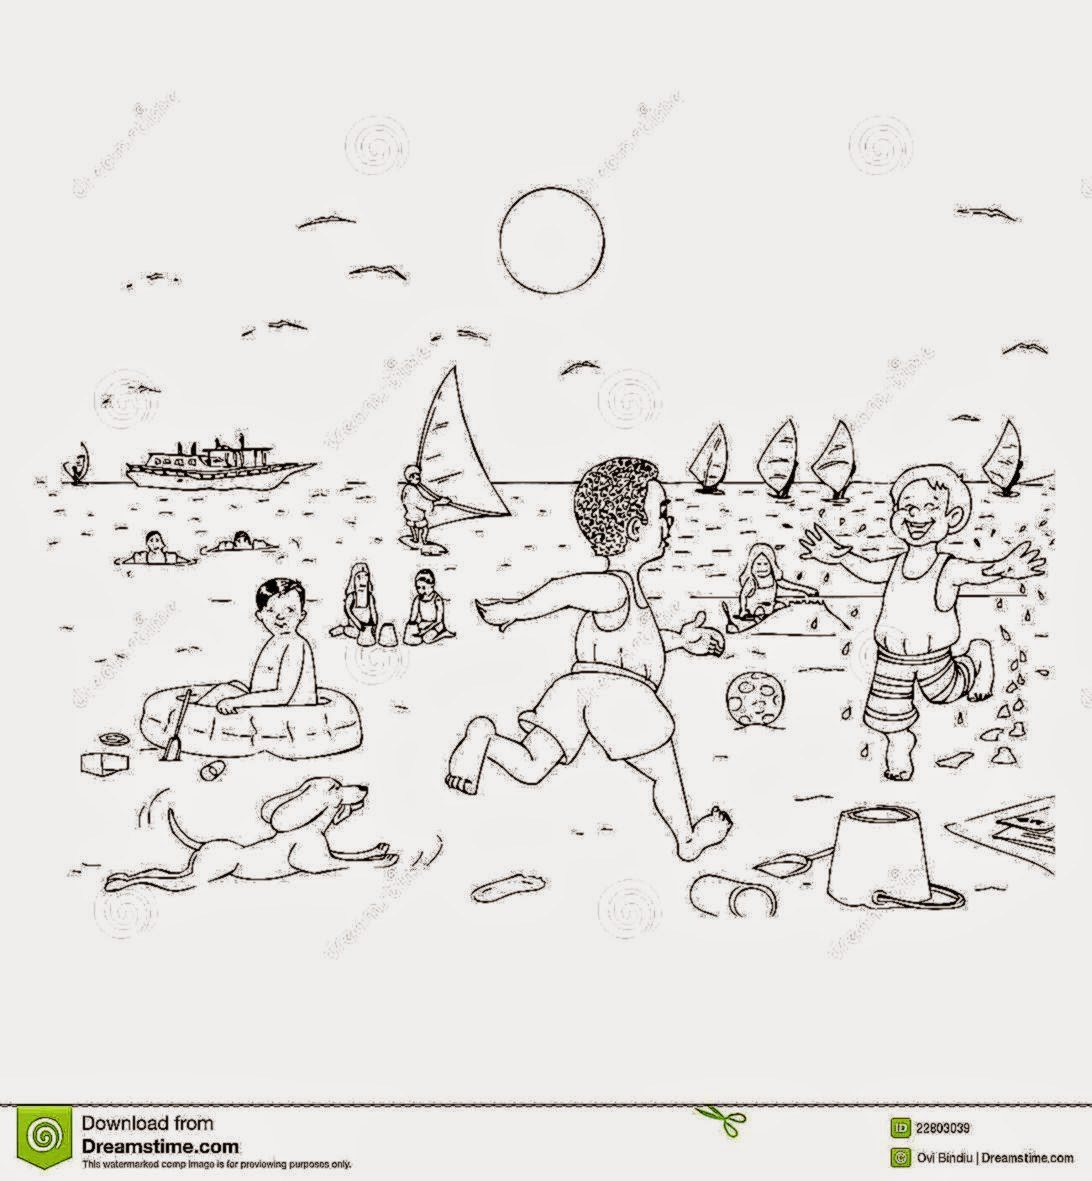 Kids at the beach clipart black and white jpg royalty free Kids at the beach clipart black and white 7 » Clipart Portal jpg royalty free